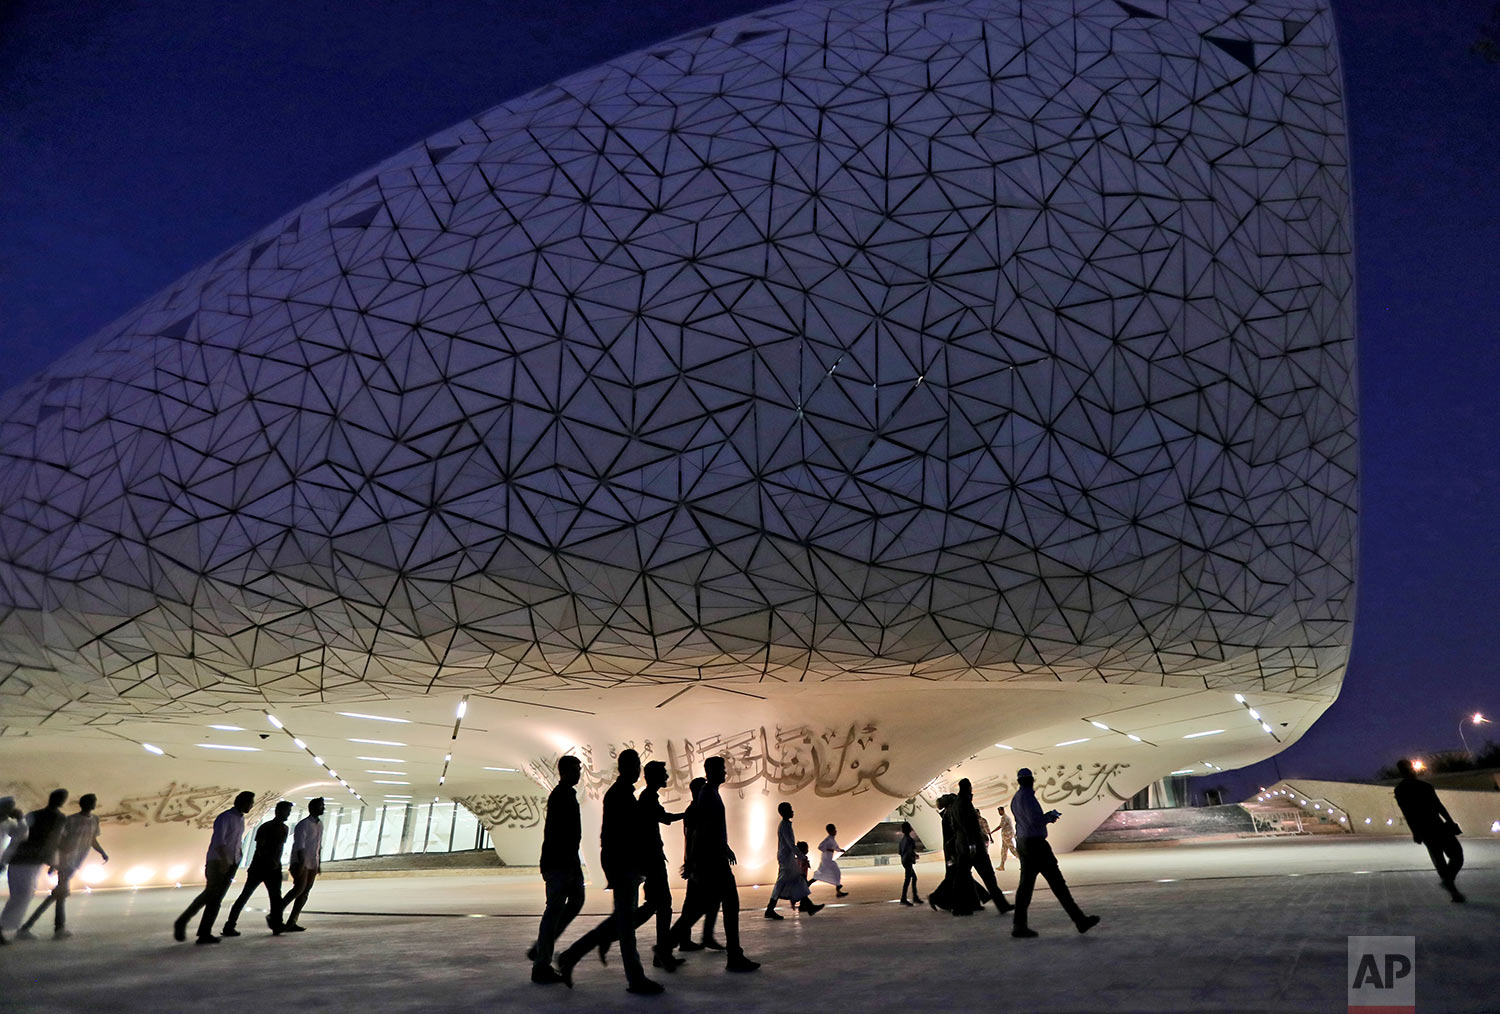 In this Sunday, May 12, 2019 photo, people leave the mosque to have their evening meal for Iftar during the holy month of Ramadan, at the Qatar Faculty of Islamic Studies in Doha, Qatar. (AP Photo/Kamran Jebreili)